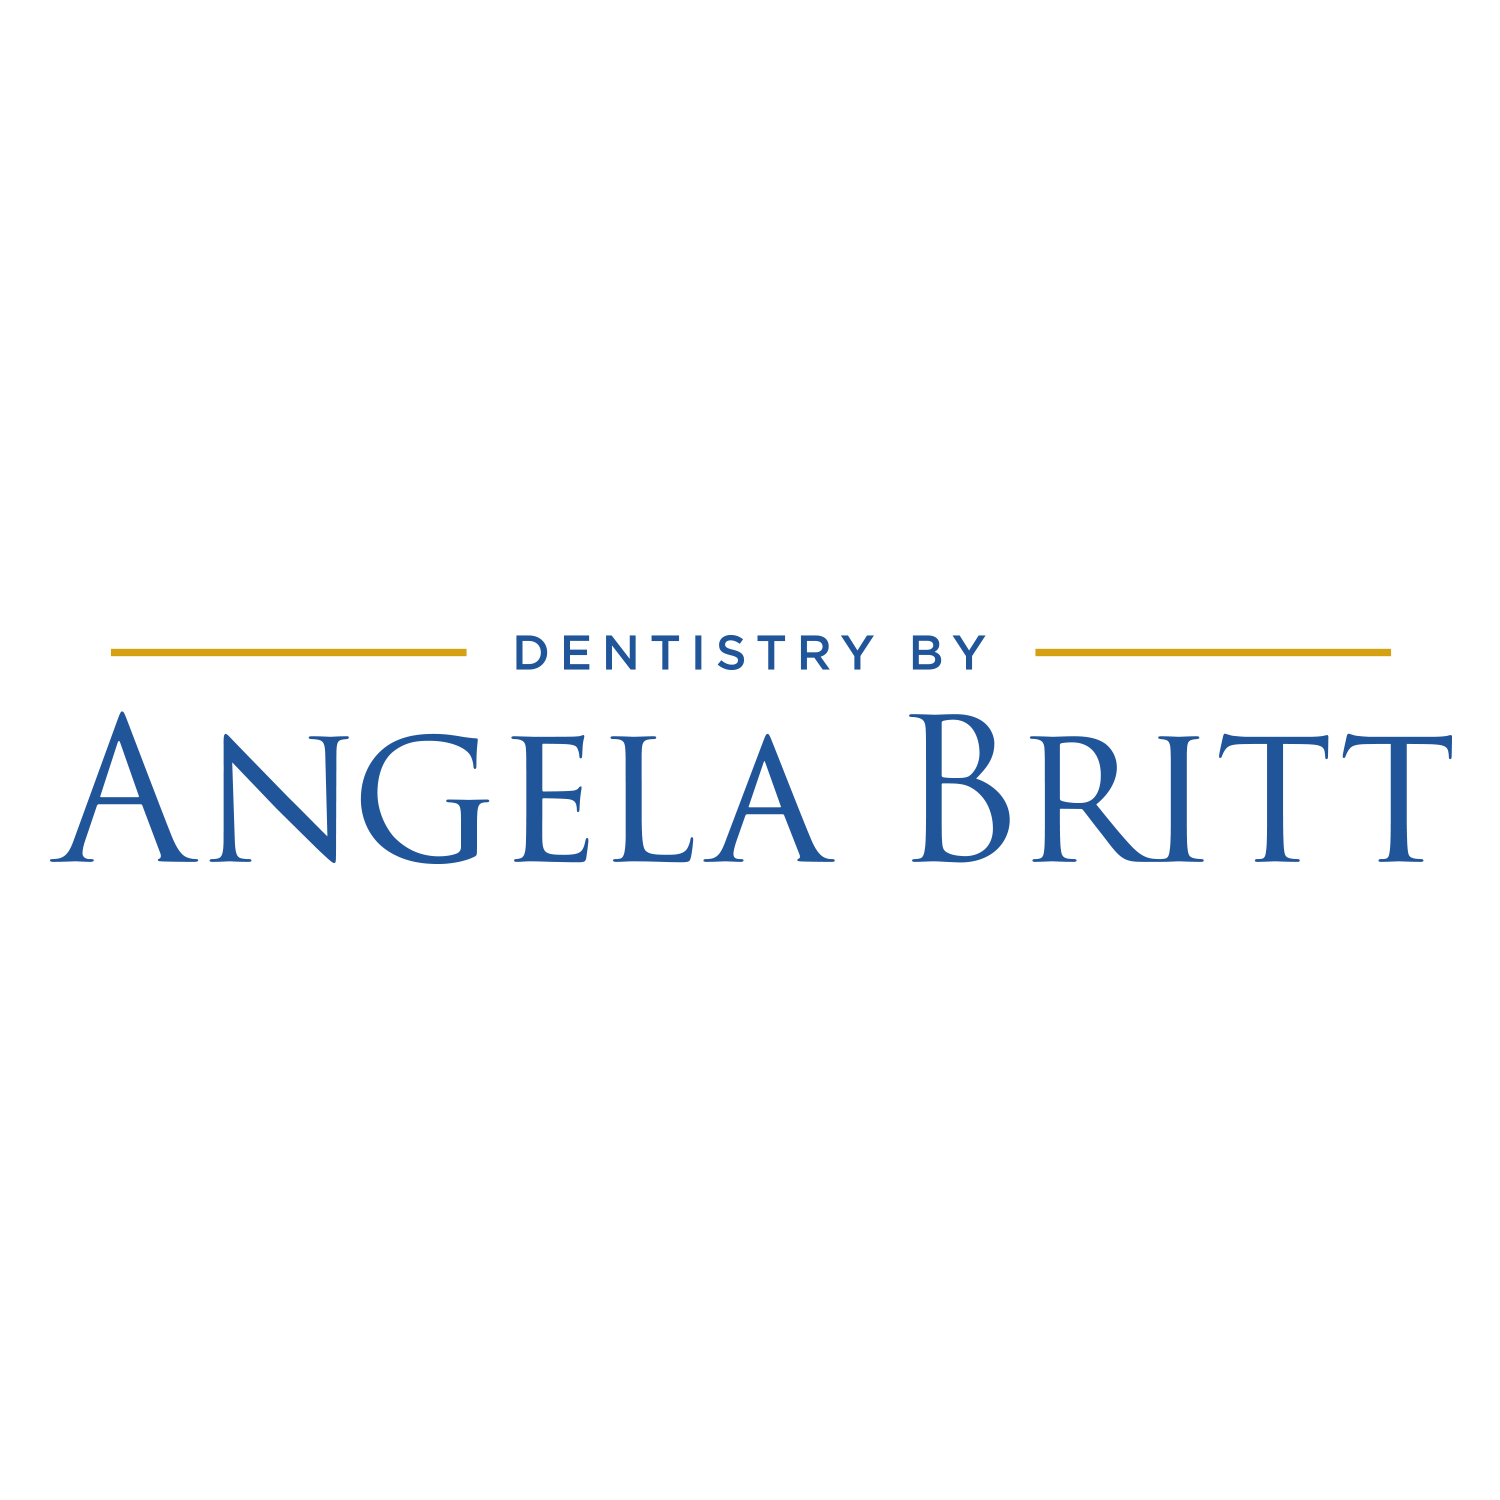 Dentistry by Angela Britt